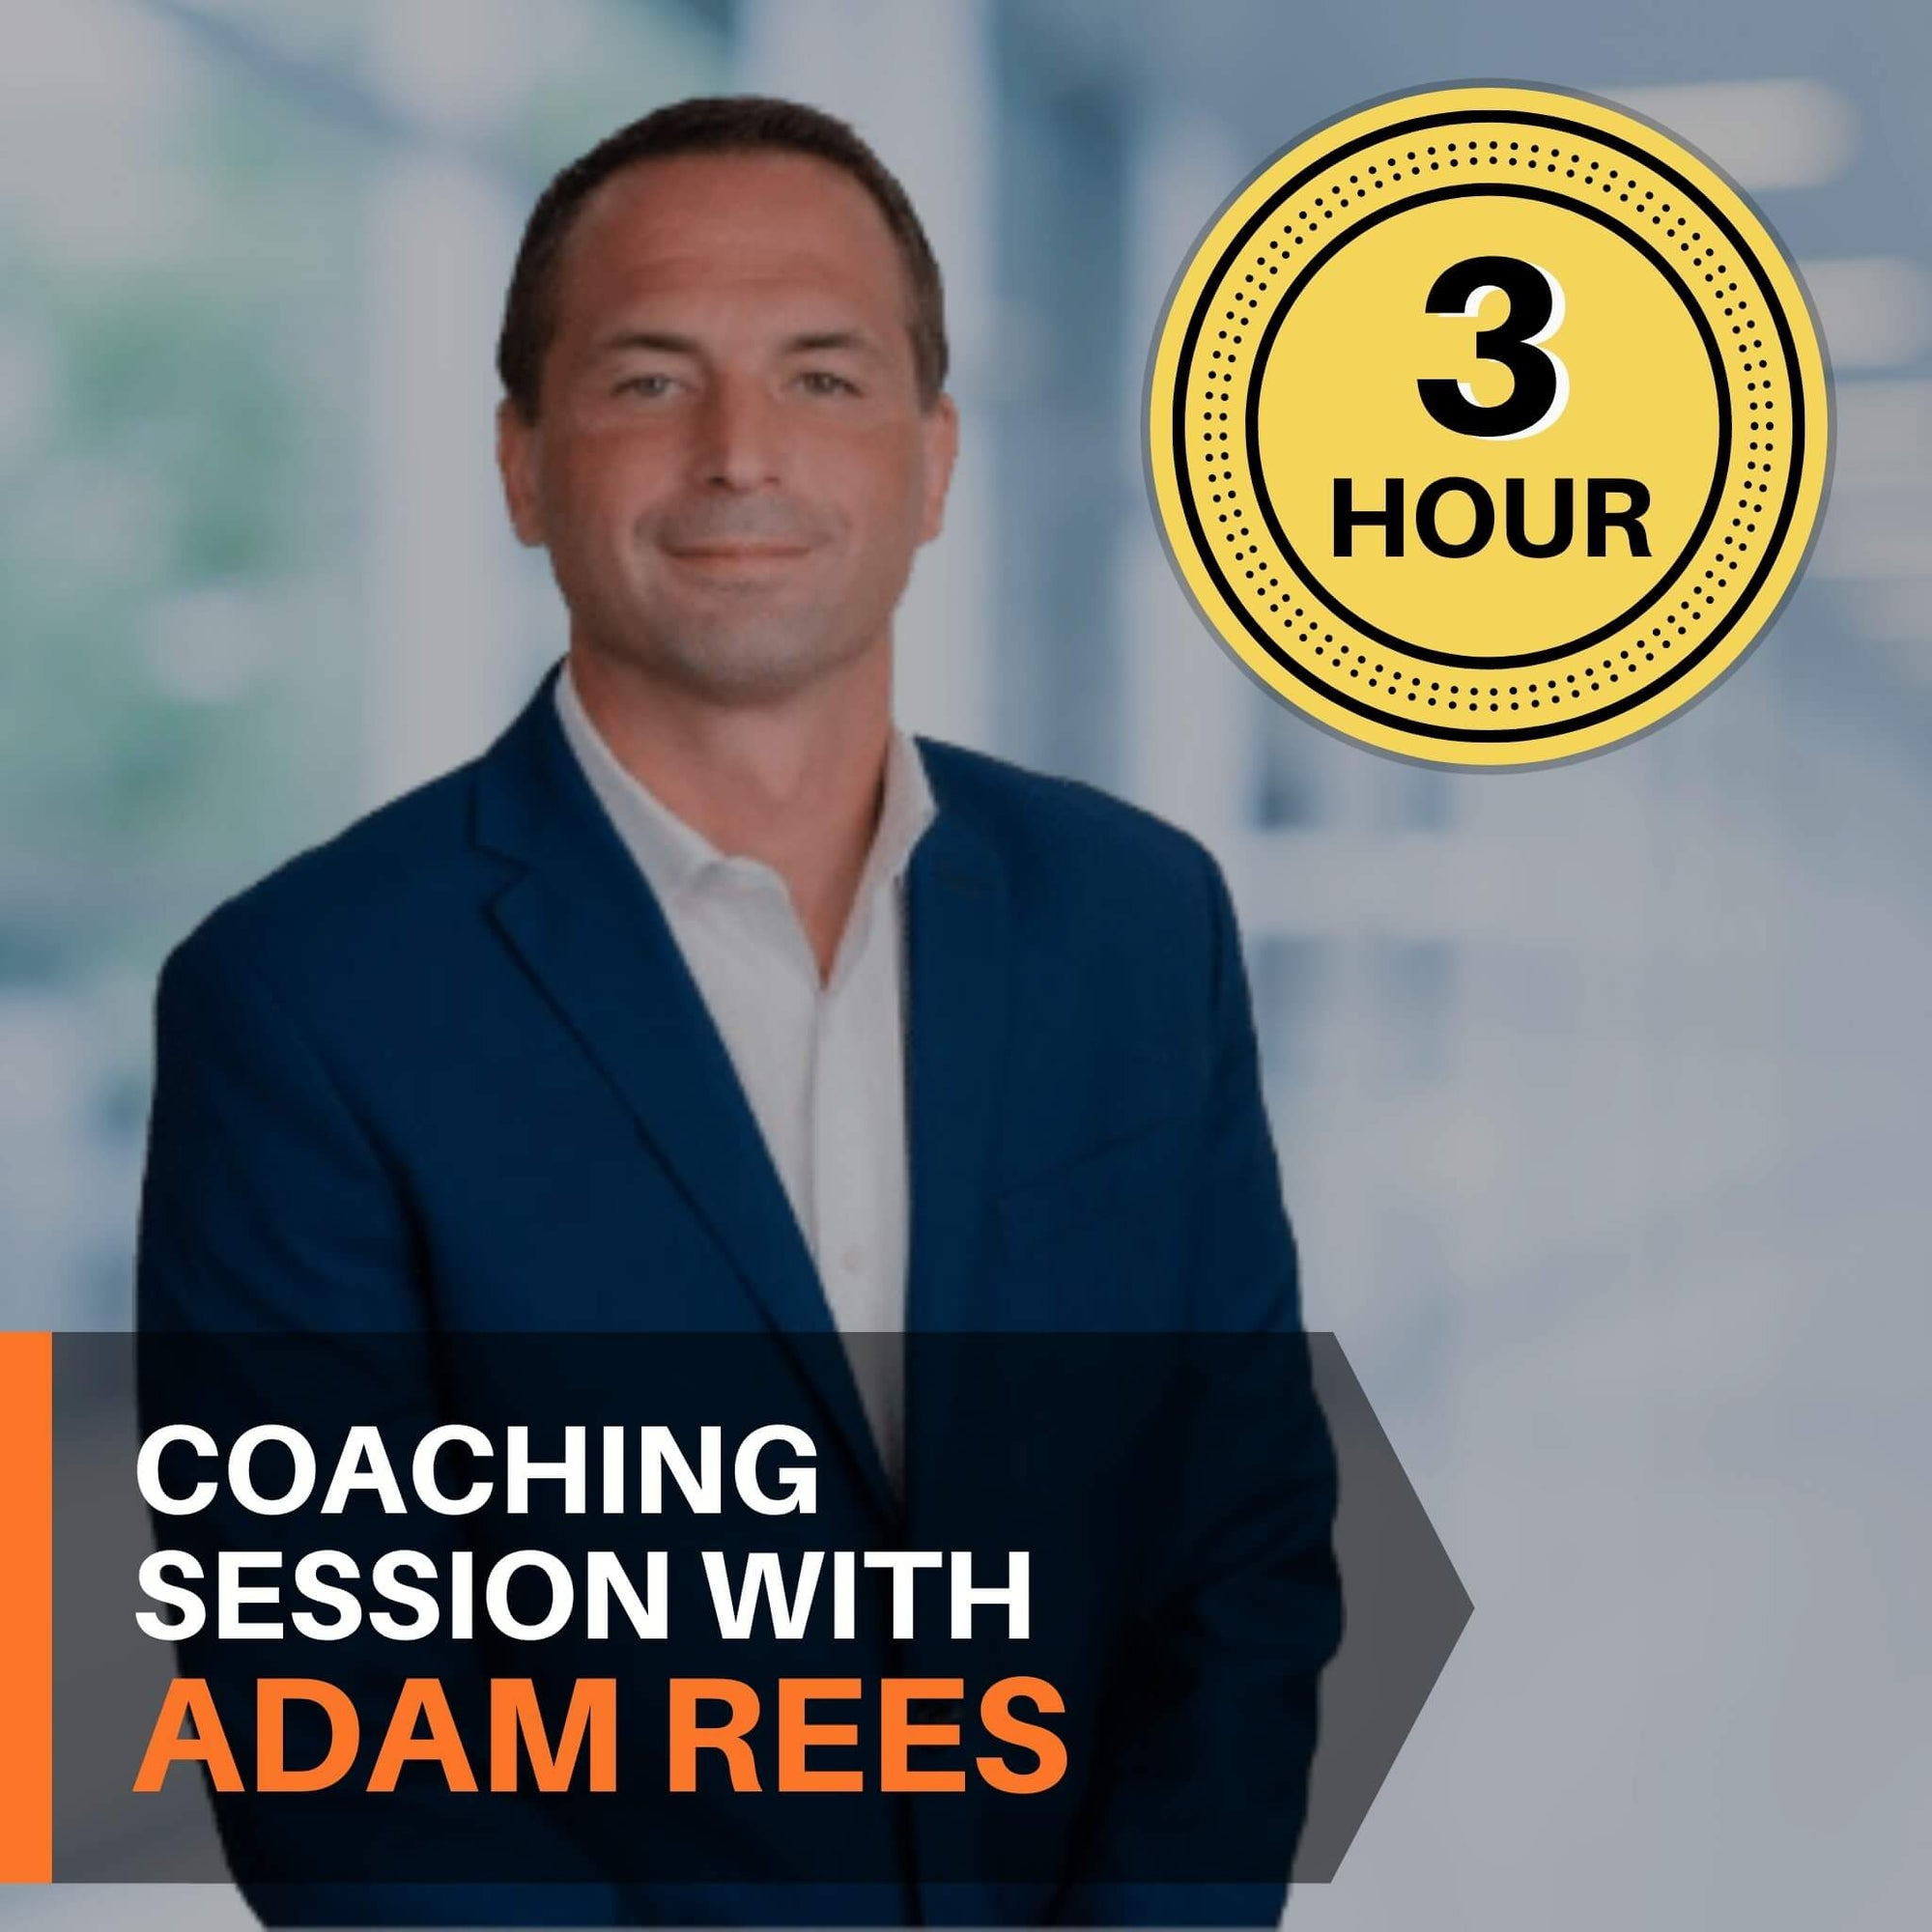 3 hour coaching session with Adam Rees